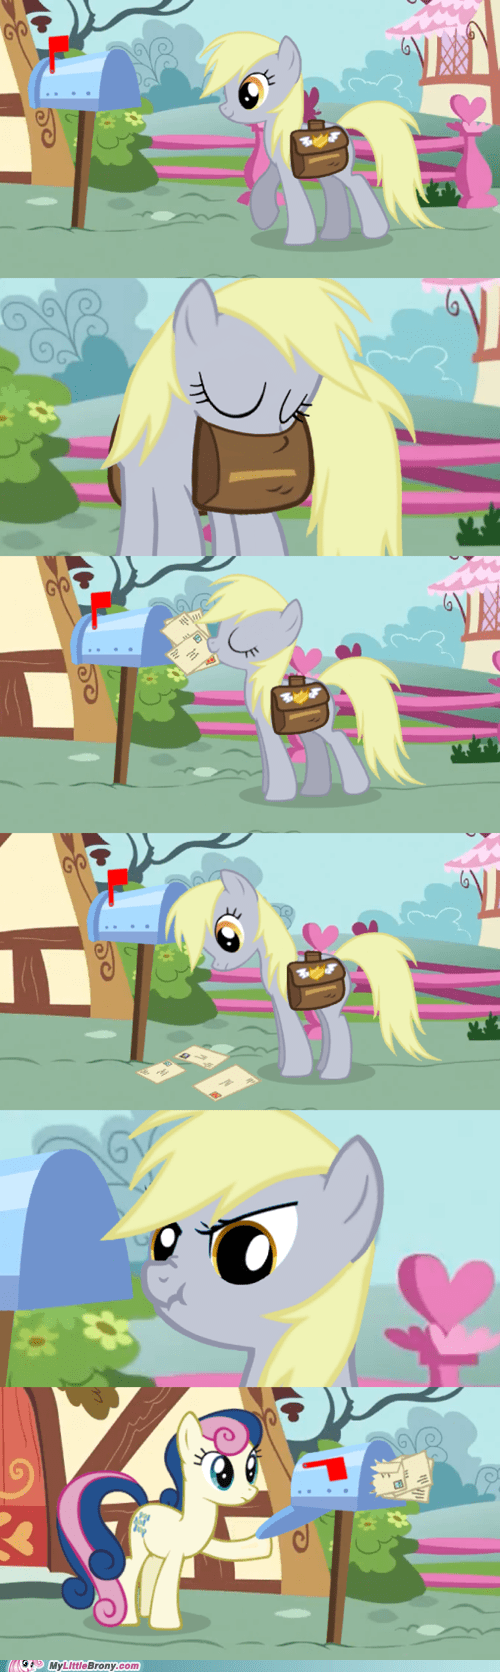 bolt of stone derpy hooves comic best for last - 7026590464